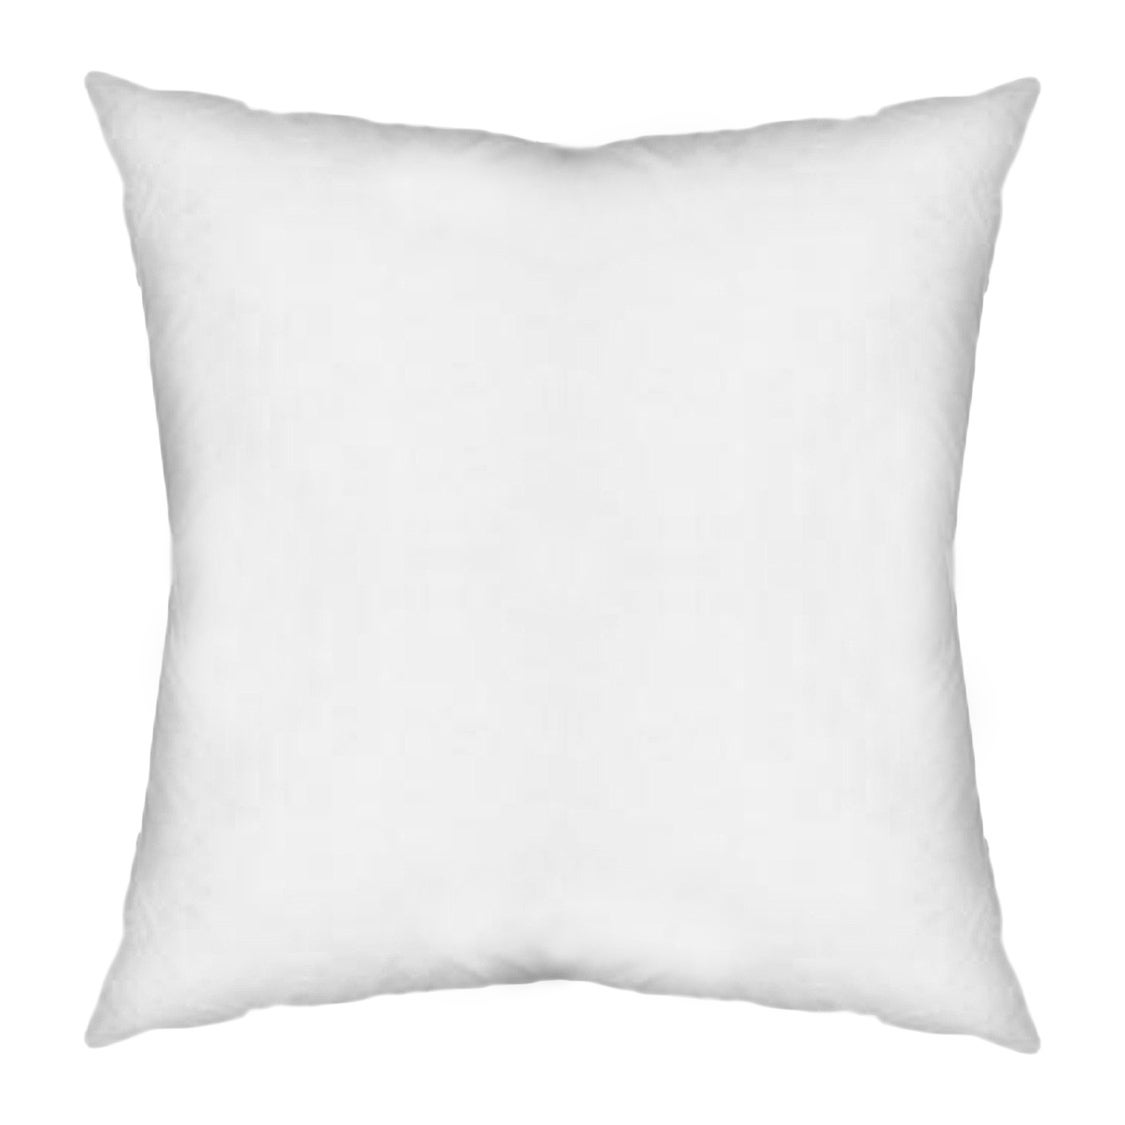 Mercana Plume Ii Down Pillow Insert Only White 20 Inch Free Shipping On Orders Over 45 20993301